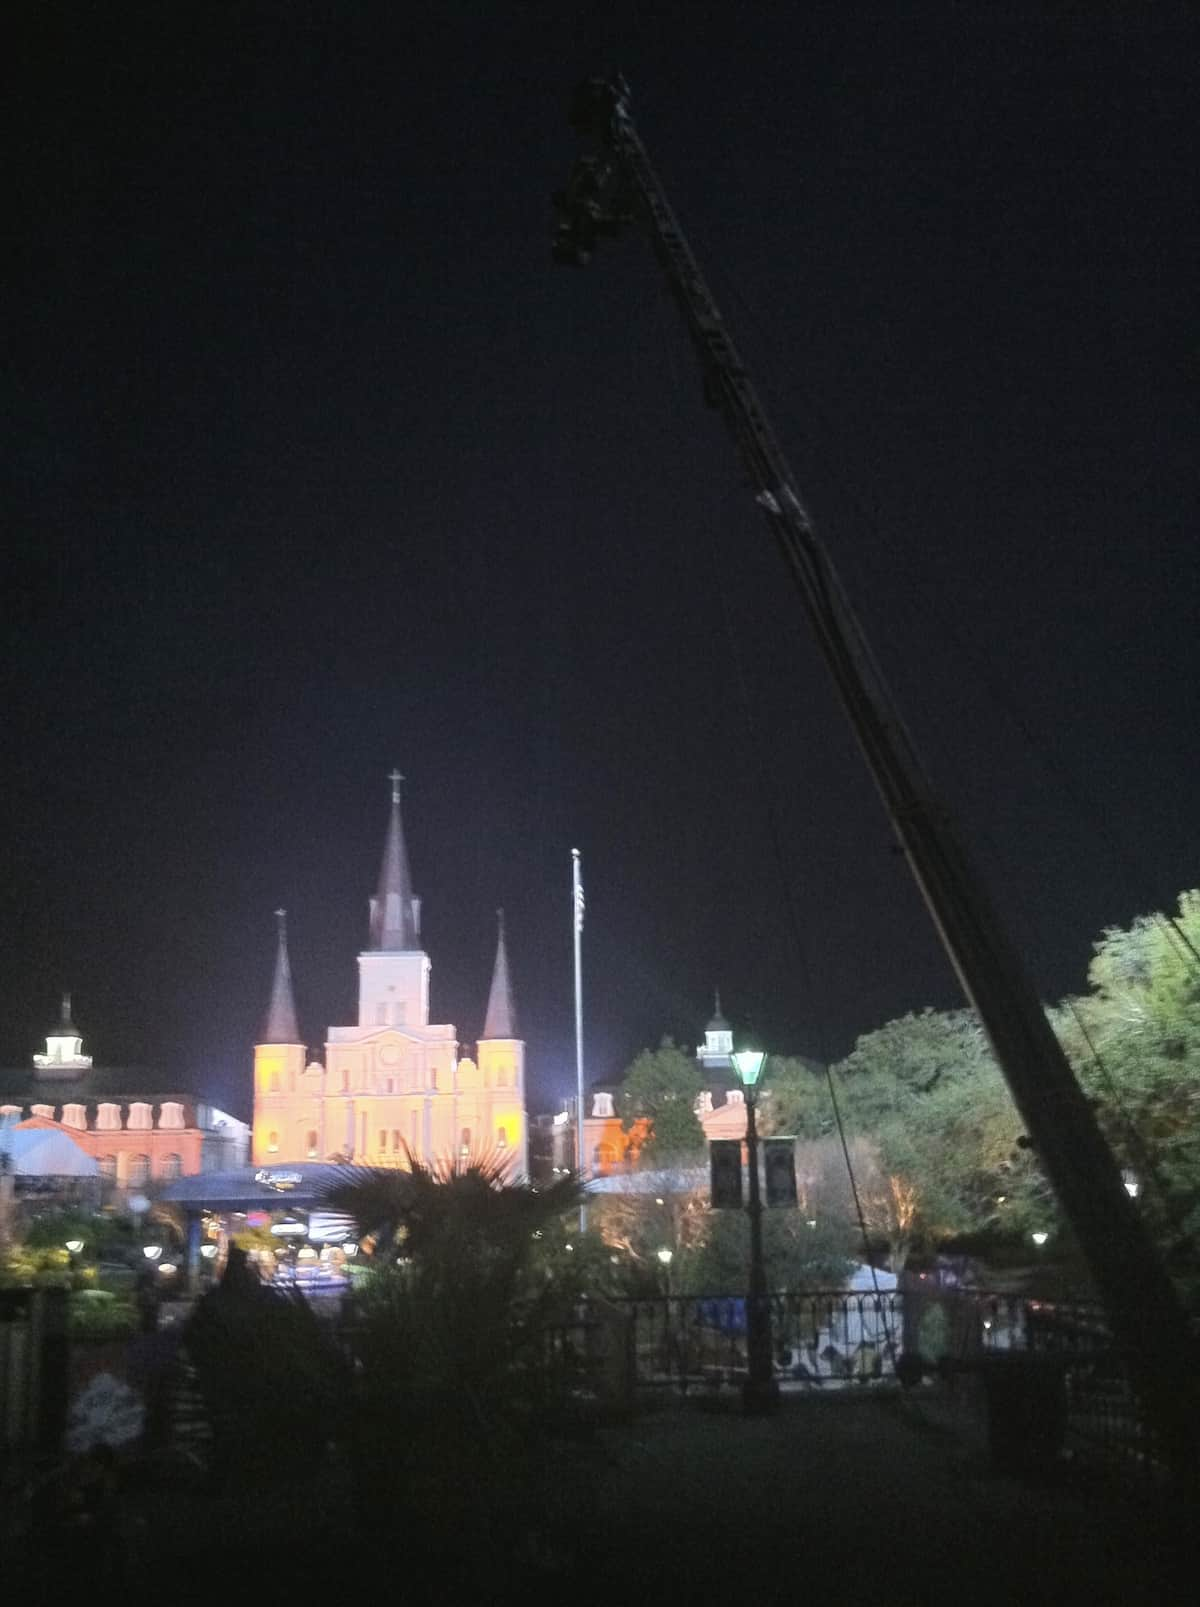 Jib - St. Louis Cathedral